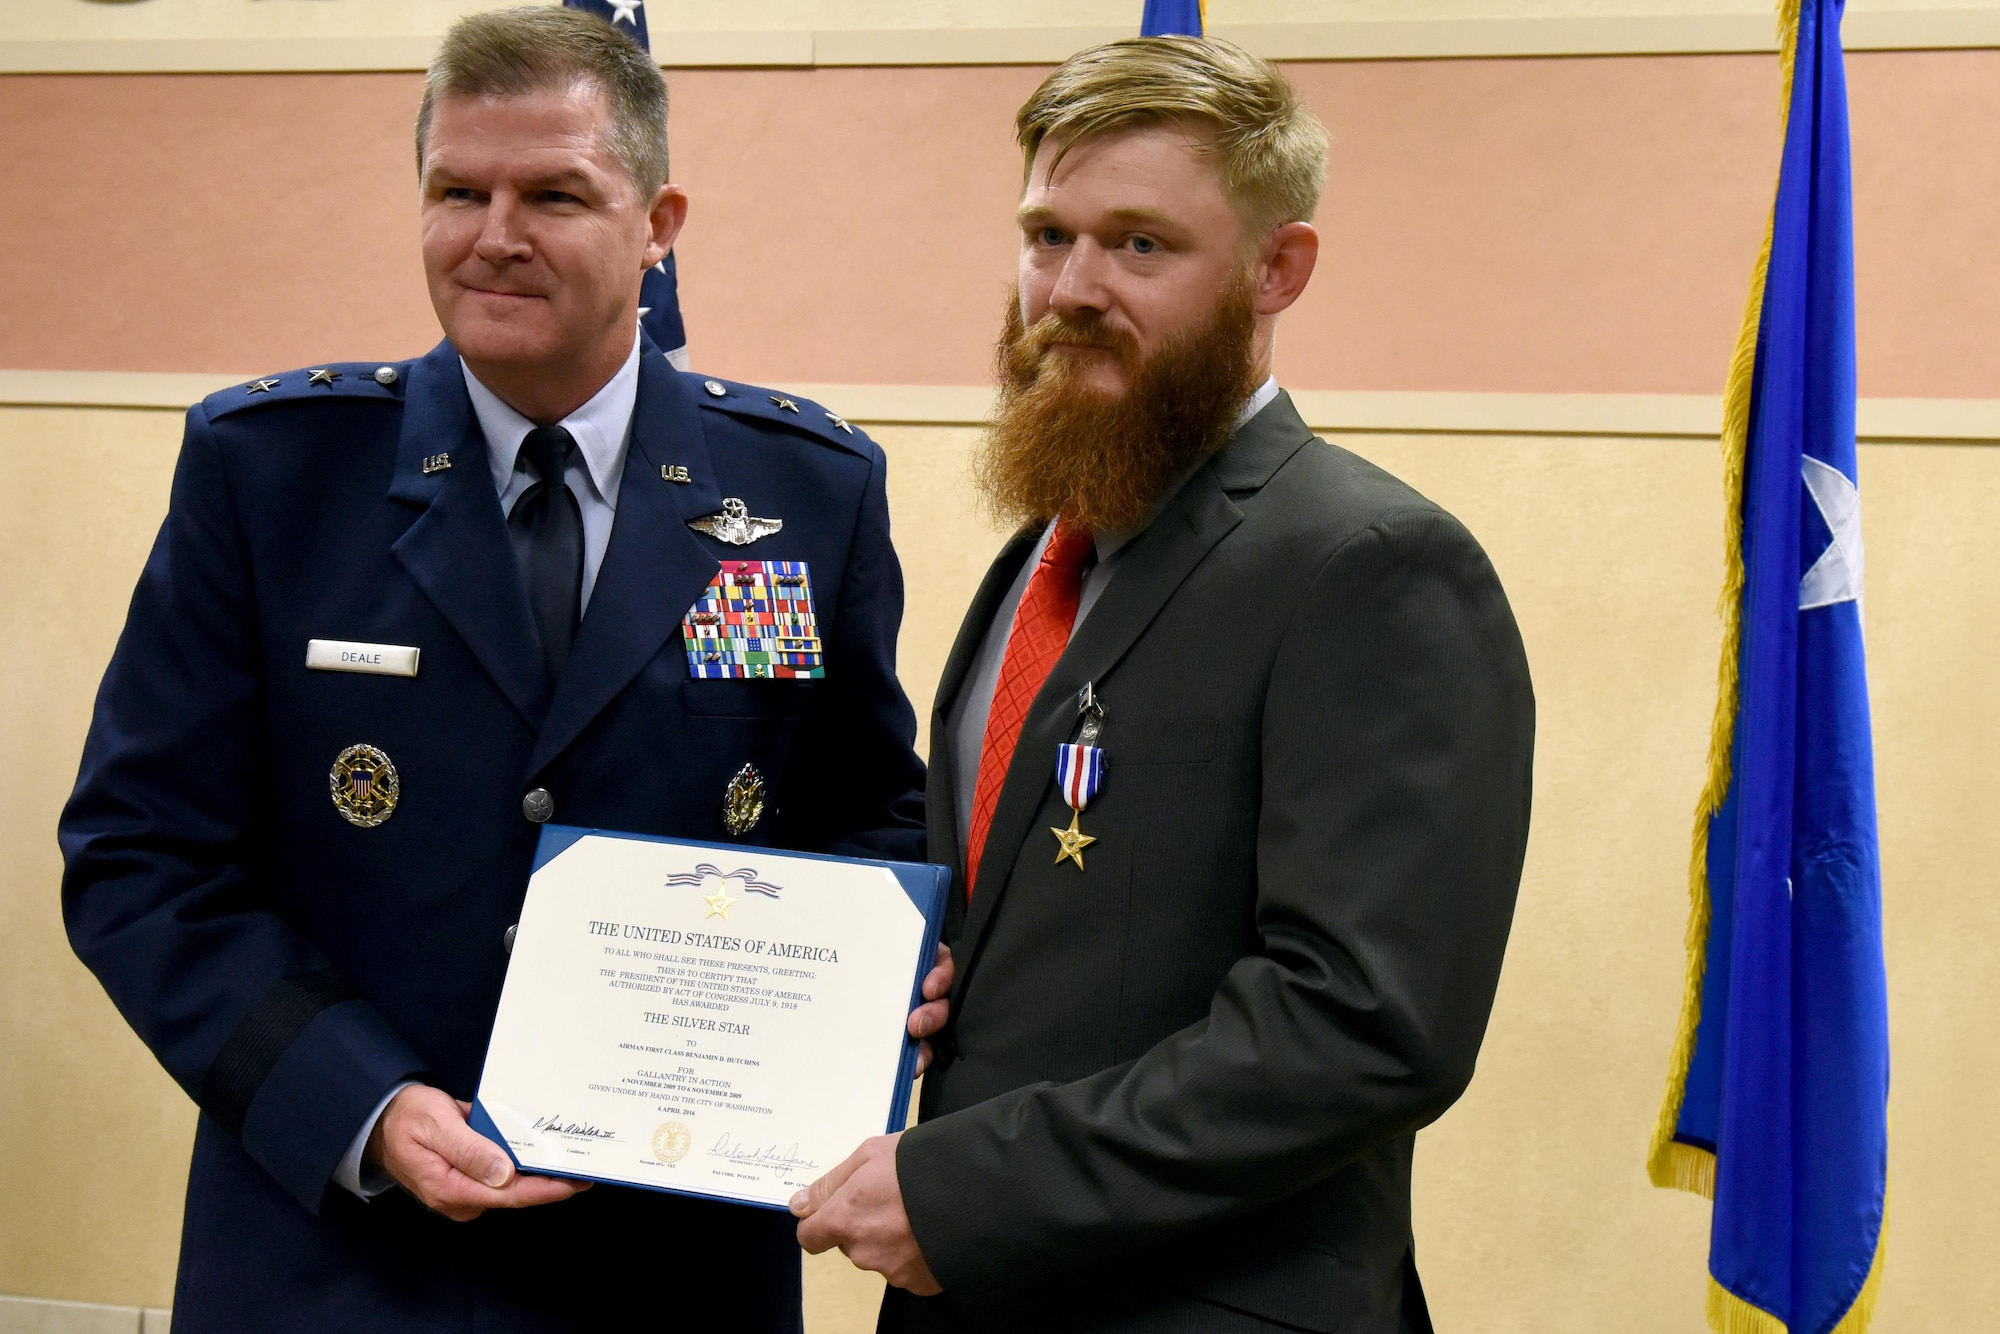 Maj. Gen. Thomas Deale, Air Combat Command director of operations, presents retired Staff Sgt. Benjamin Hutchins, 18th Air Support Operations Group joint terminal attack controller, with the Silver Star Medal during a ceremony, Nov. 4, 2016 at Pope Army Airfield, North Carolina. Hutchins received the medal for his heroic actions during a deployment while assigned to the 504th Expeditionary Air Support Operations Group in Bala Murghab, Afghanistan in 2009. (U.S. Air Force photo by Airman Miranda A. Loera)